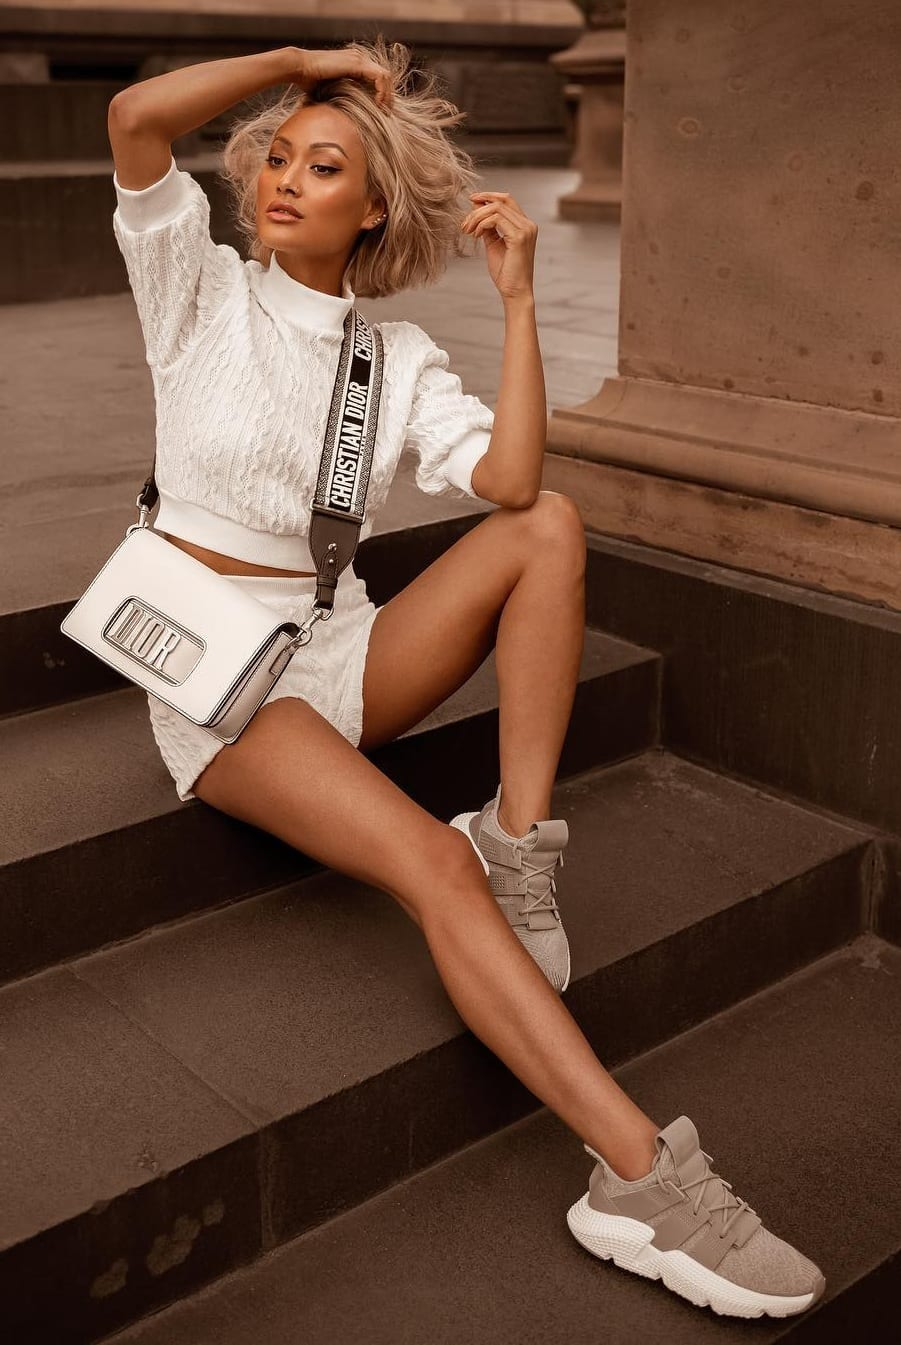 Sneakers-White-Shorts-and-Top-Outfit-for-women